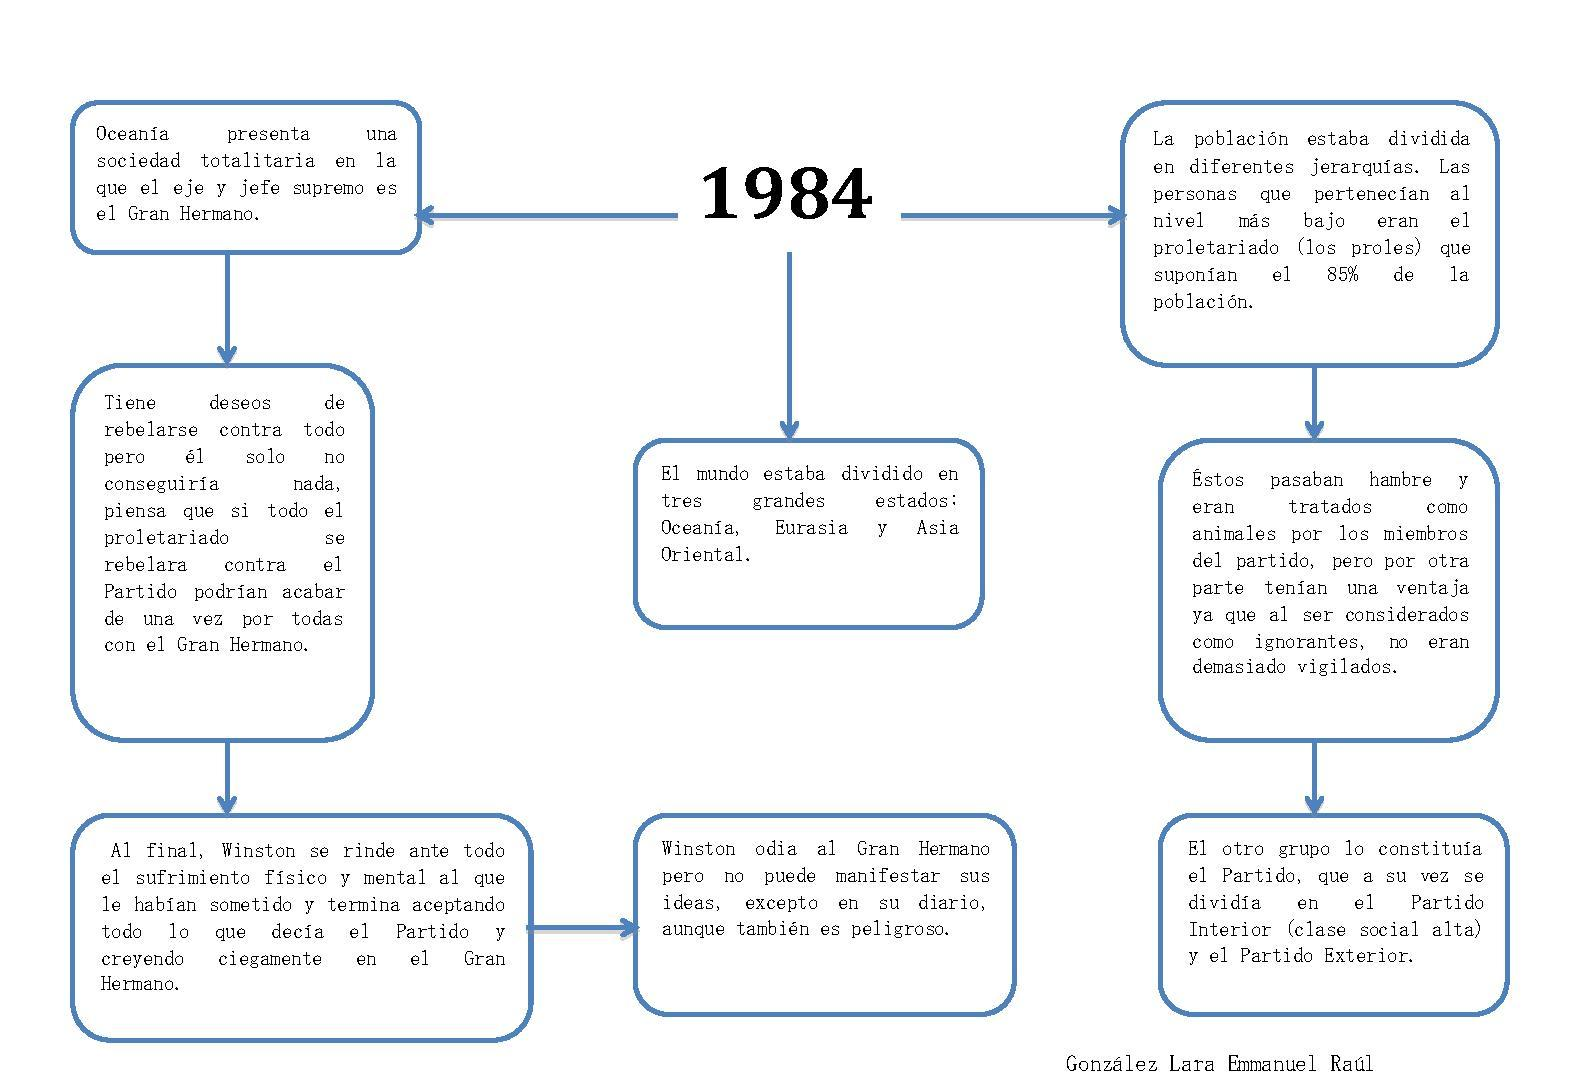 1984 george orwell conformity A summary of themes in george orwell's 1984 learn exactly what happened in this chapter, scene, or section of 1984 and what it means perfect for acing essays, tests, and quizzes, as well as for writing lesson plans.